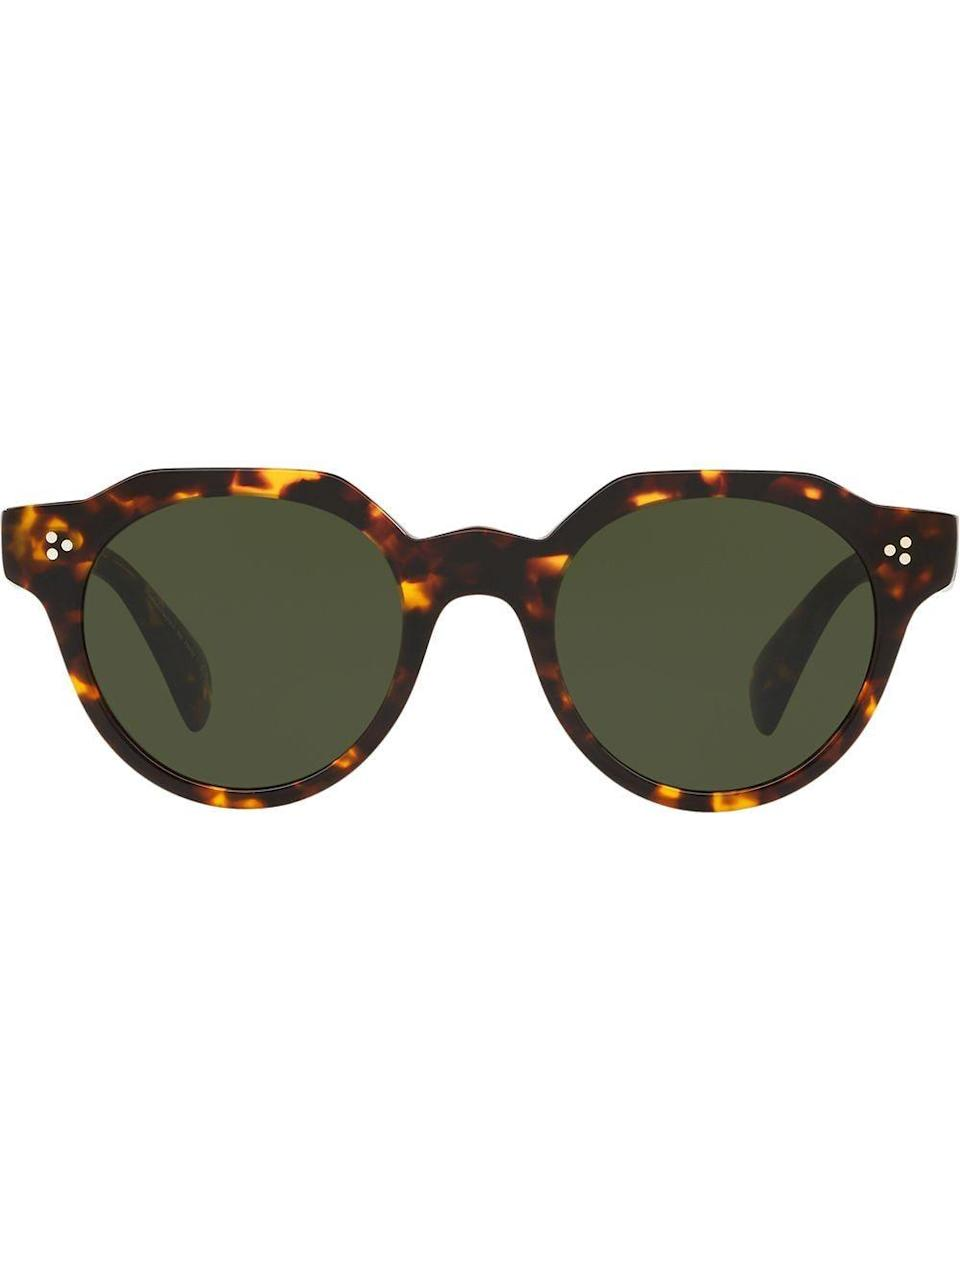 "<p><strong>Oliver Peoples</strong></p><p>farfetch.com</p><p><a href=""https://go.redirectingat.com?id=74968X1596630&url=https%3A%2F%2Fwww.farfetch.com%2Fshopping%2Fmen%2Foliver-peoples-irven-sunglasses-item-14051413.aspx&sref=https%3A%2F%2Fwww.harpersbazaar.com%2Ffashion%2Ftrends%2Fg36202327%2Fmothers-day-gifts-sale%2F"" rel=""nofollow noopener"" target=""_blank"" data-ylk=""slk:Shop Now"" class=""link rapid-noclick-resp"">Shop Now</a></p><p><strong><del>$380</del> $190 (50% off)</strong></p><p>They say the best gifts are the ones you want for yourself.</p>"